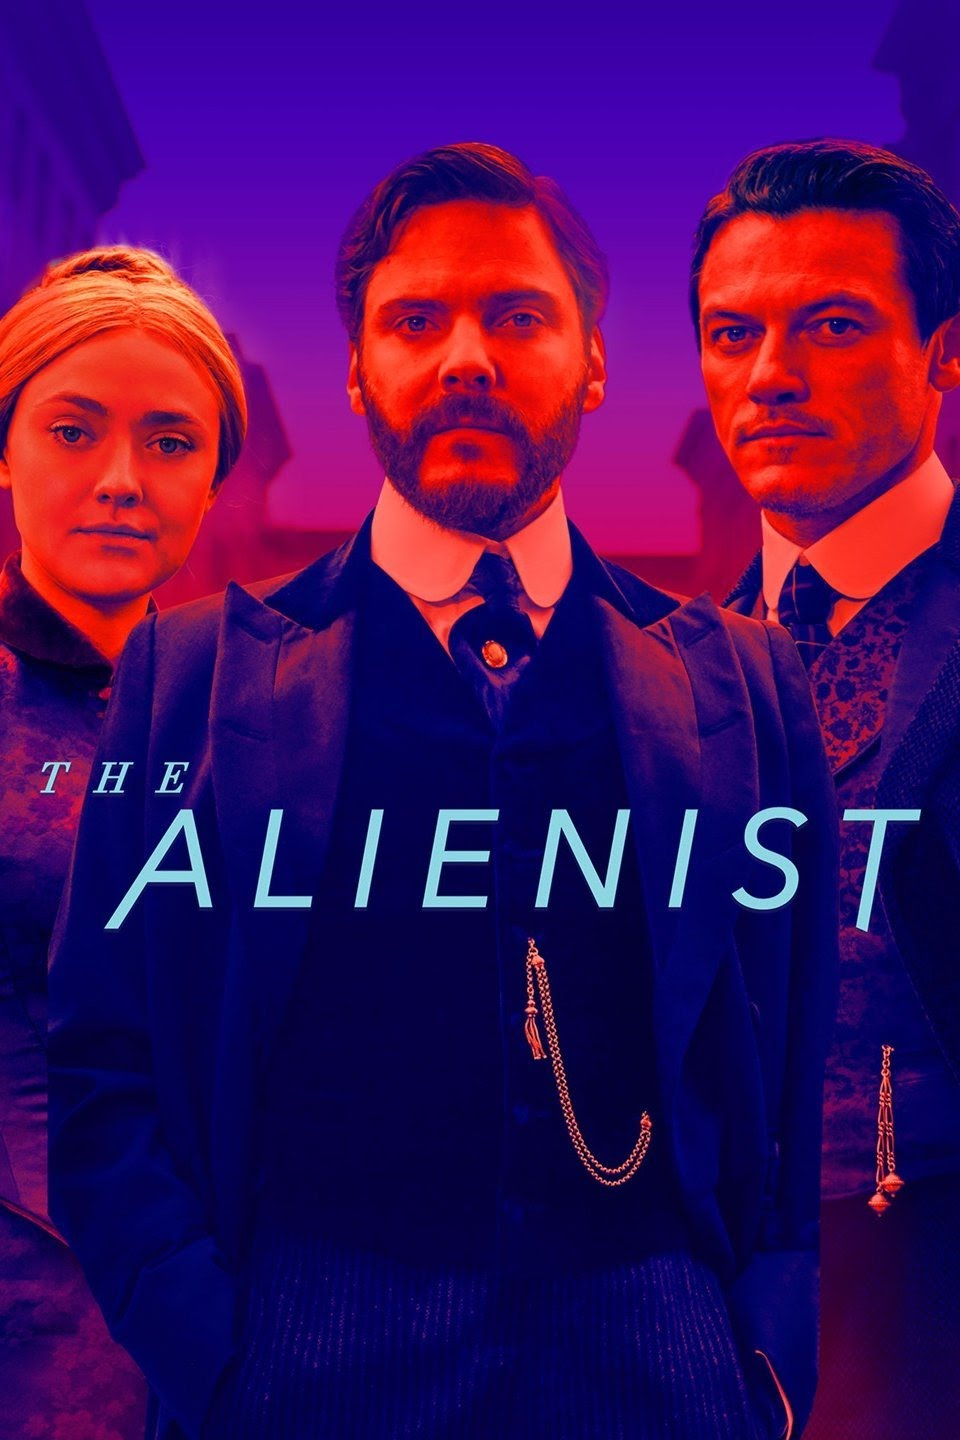 The Alienist: Angel of Darkness (Season 2) Hindi Dubbed Complete Netflix Series 480p | 720p